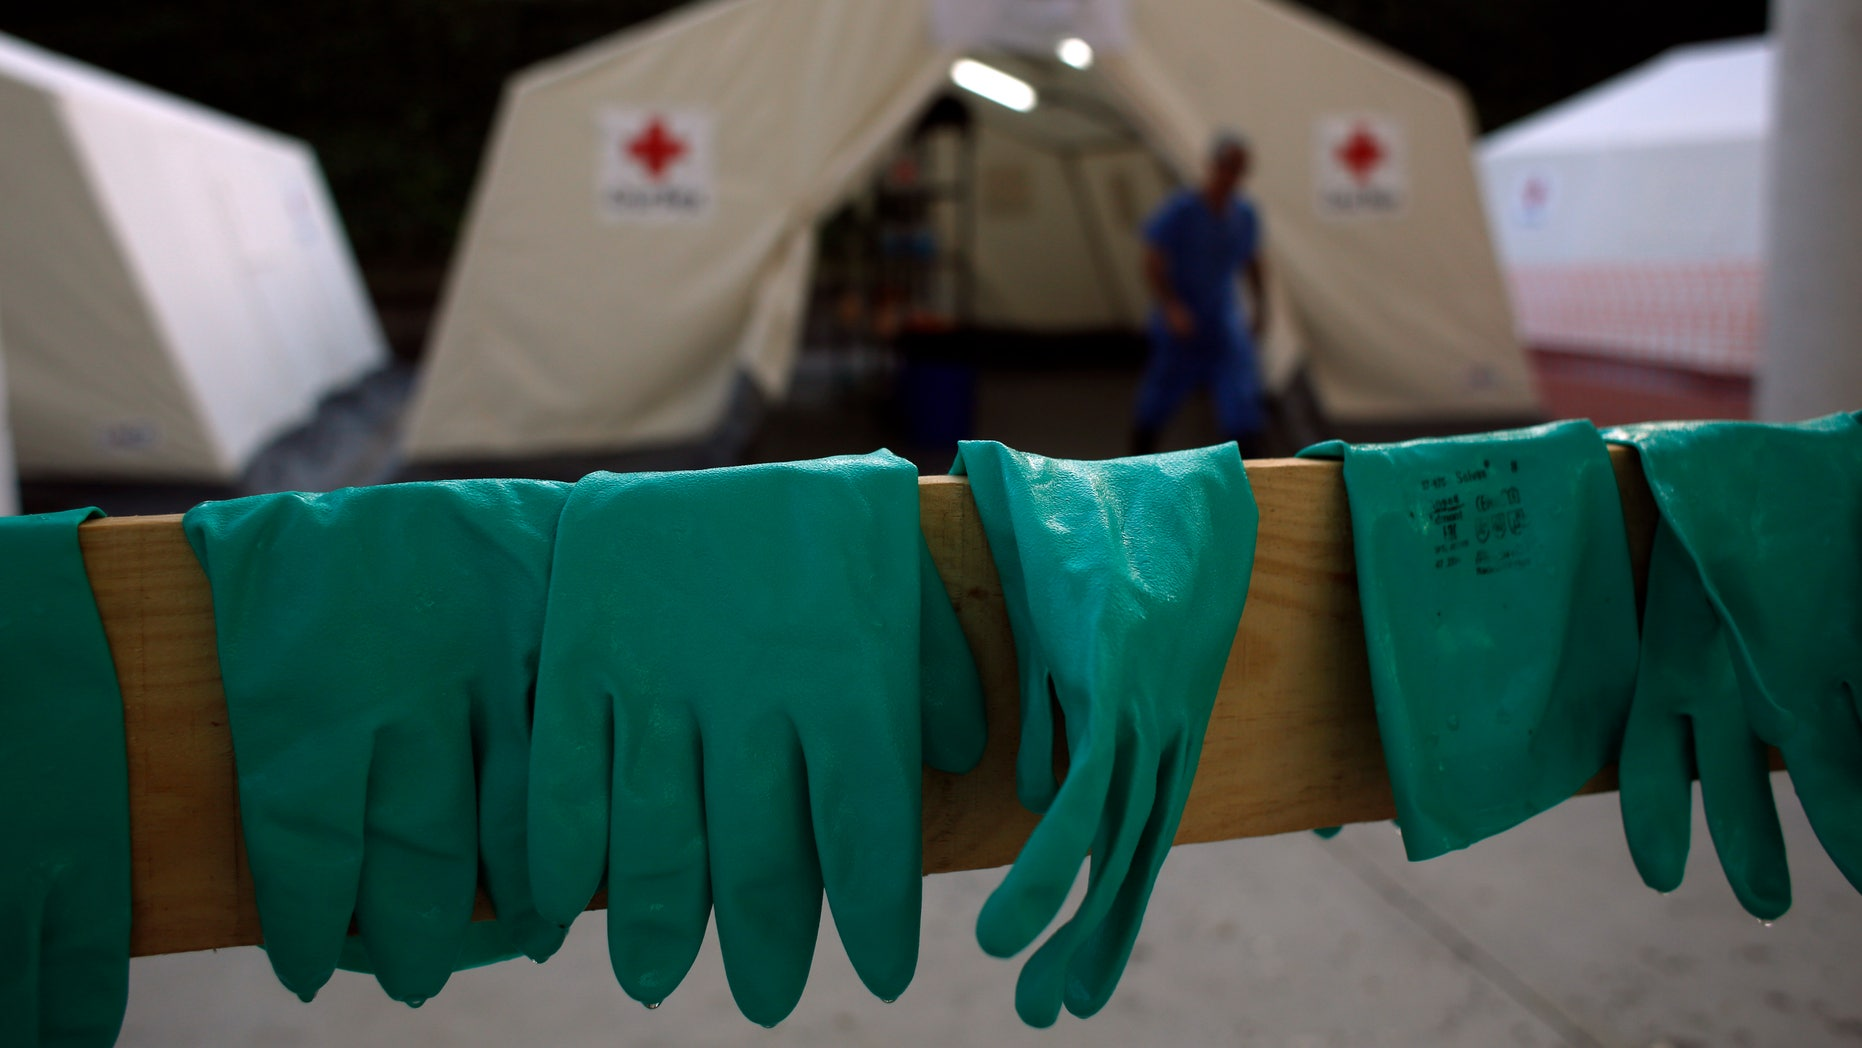 Gloves are left to dry after an Ebola training session held by Spain's Red Cross in Madrid October 29, 2014. REUTERS/Susana Vera